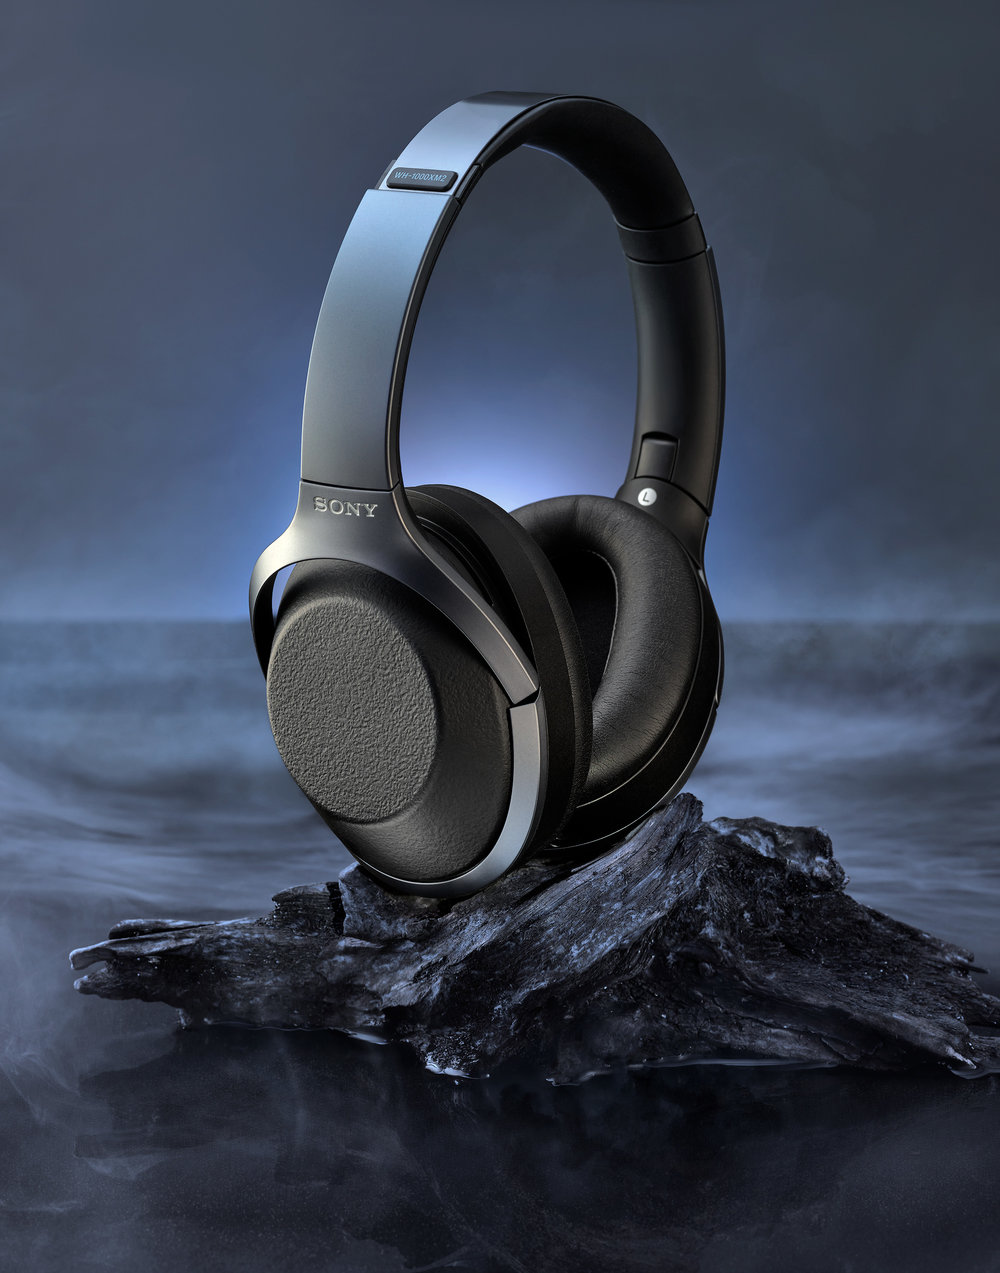 042518SonyHeadphone_V2-copy.jpg